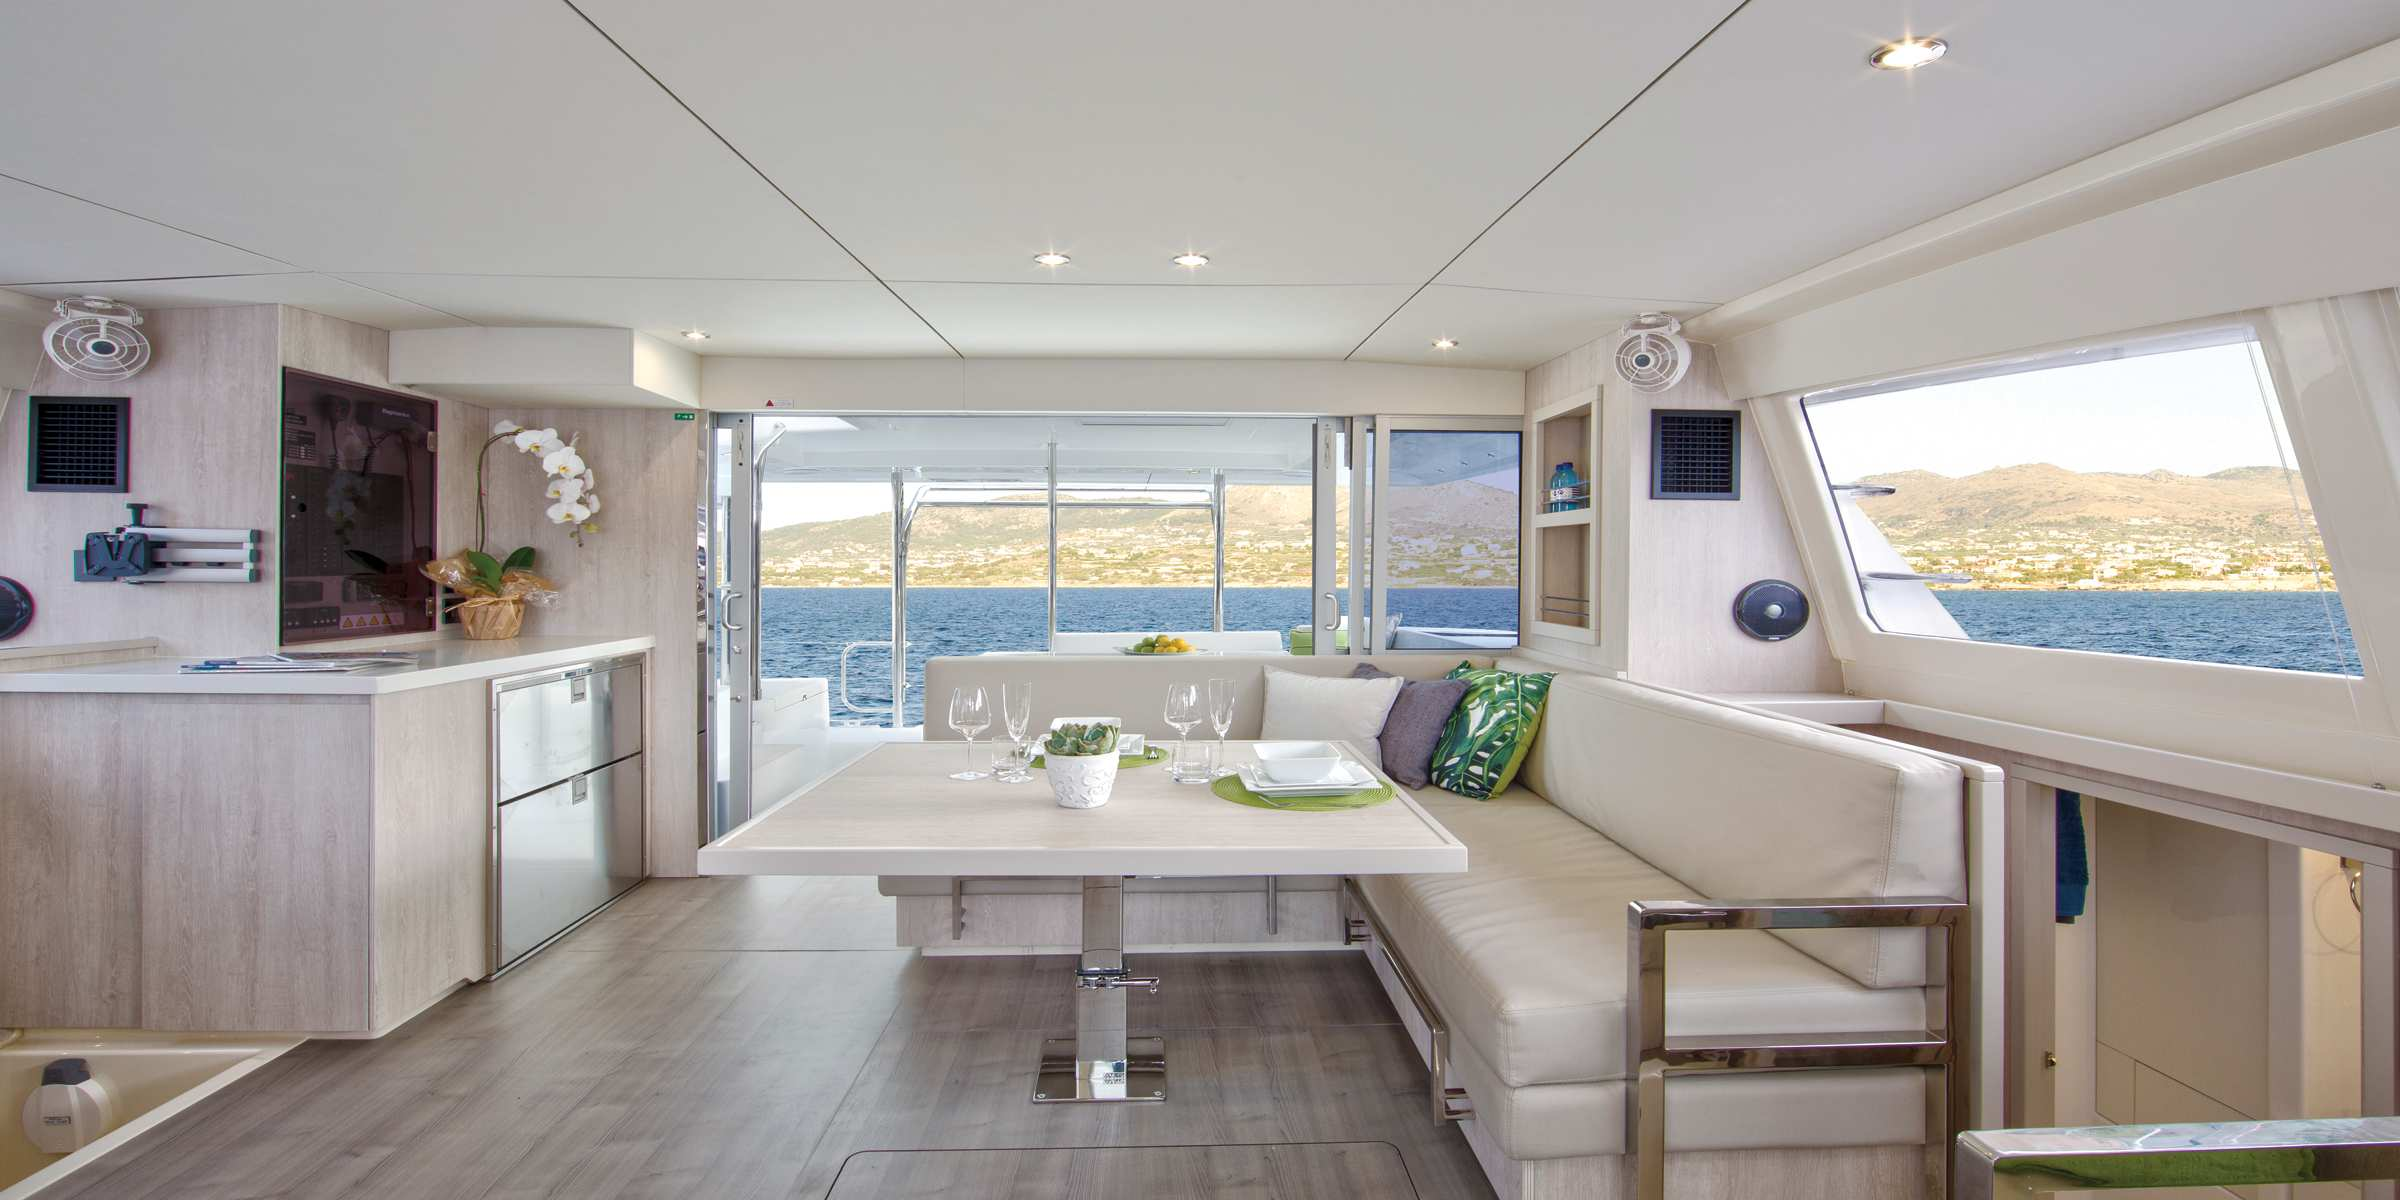 moorings4000-interior-2400x1200-web.jpg